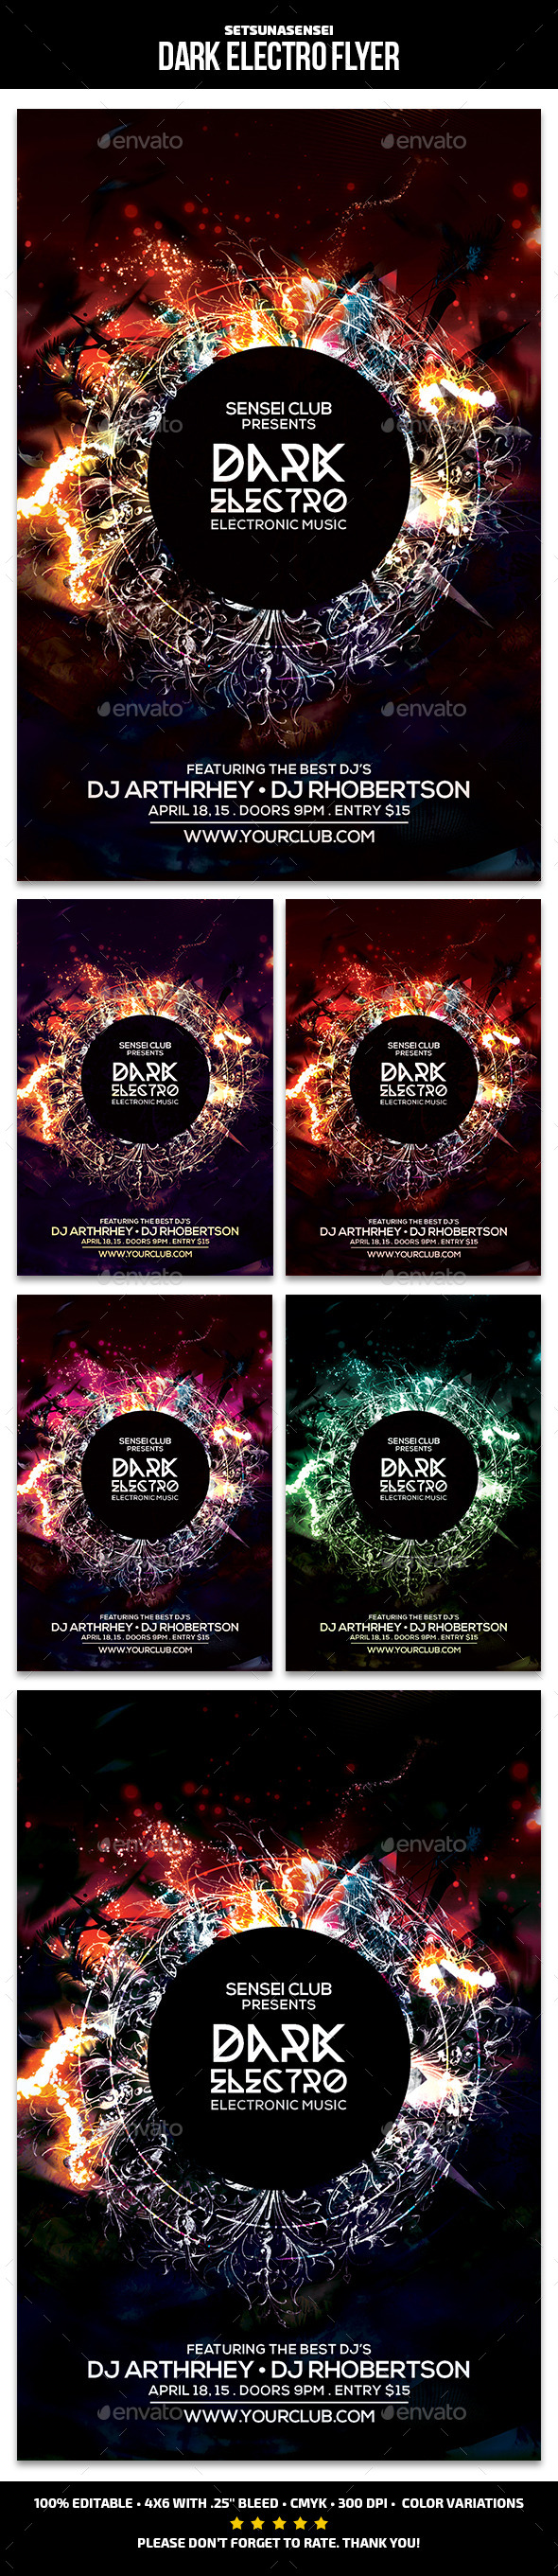 GraphicRiver Dark Electro Flyer Vol.2 11033713